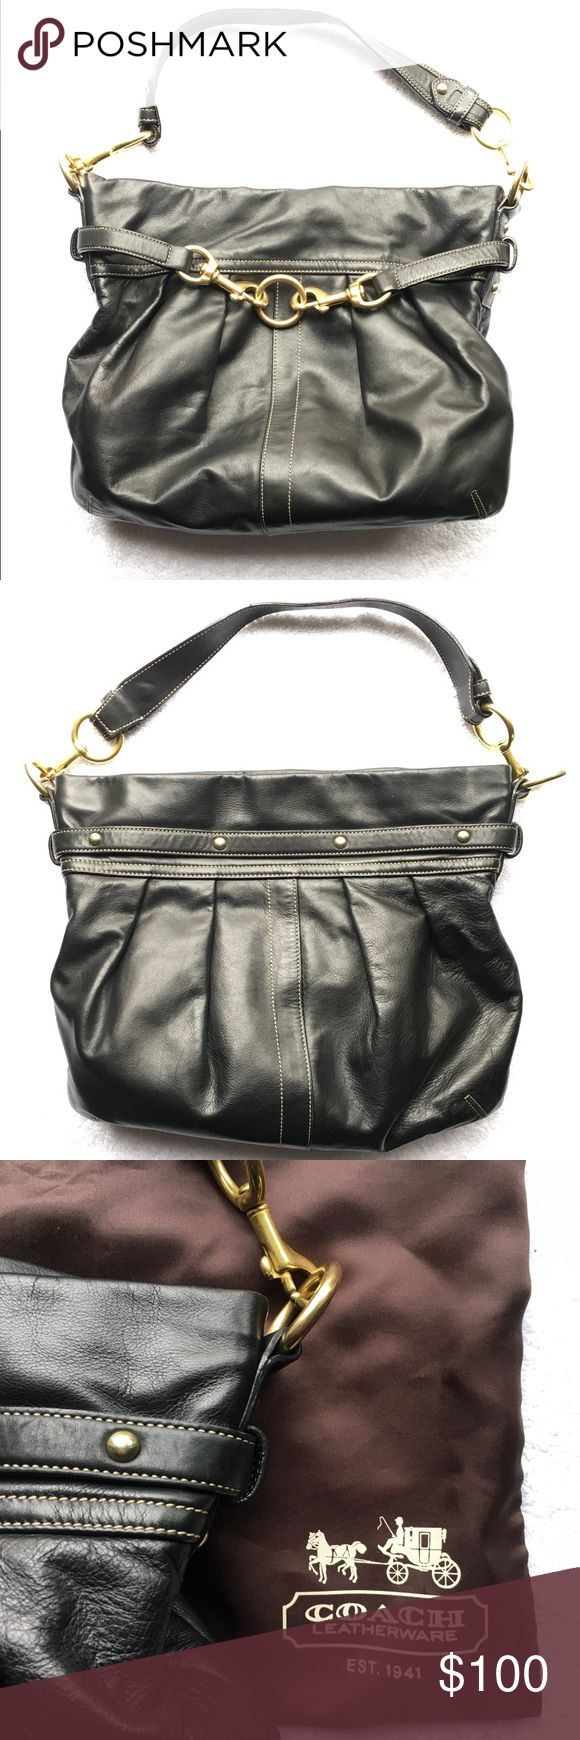 COACH Hamptons Belted Leather Hobo Shoulder Bag Coach Hamptons Belted Leather Pleated Hobo Shoulder Bag 10205  Top zipped closure with leather pull.  Inside zipped pocket and two slide pockets.  Gold tone solid heavy hardware.   Measures 13'' long and 12'' high Excellent Gently Used Condition   9.5'' shoulder strap drop Coach Bags Shoulder Bags